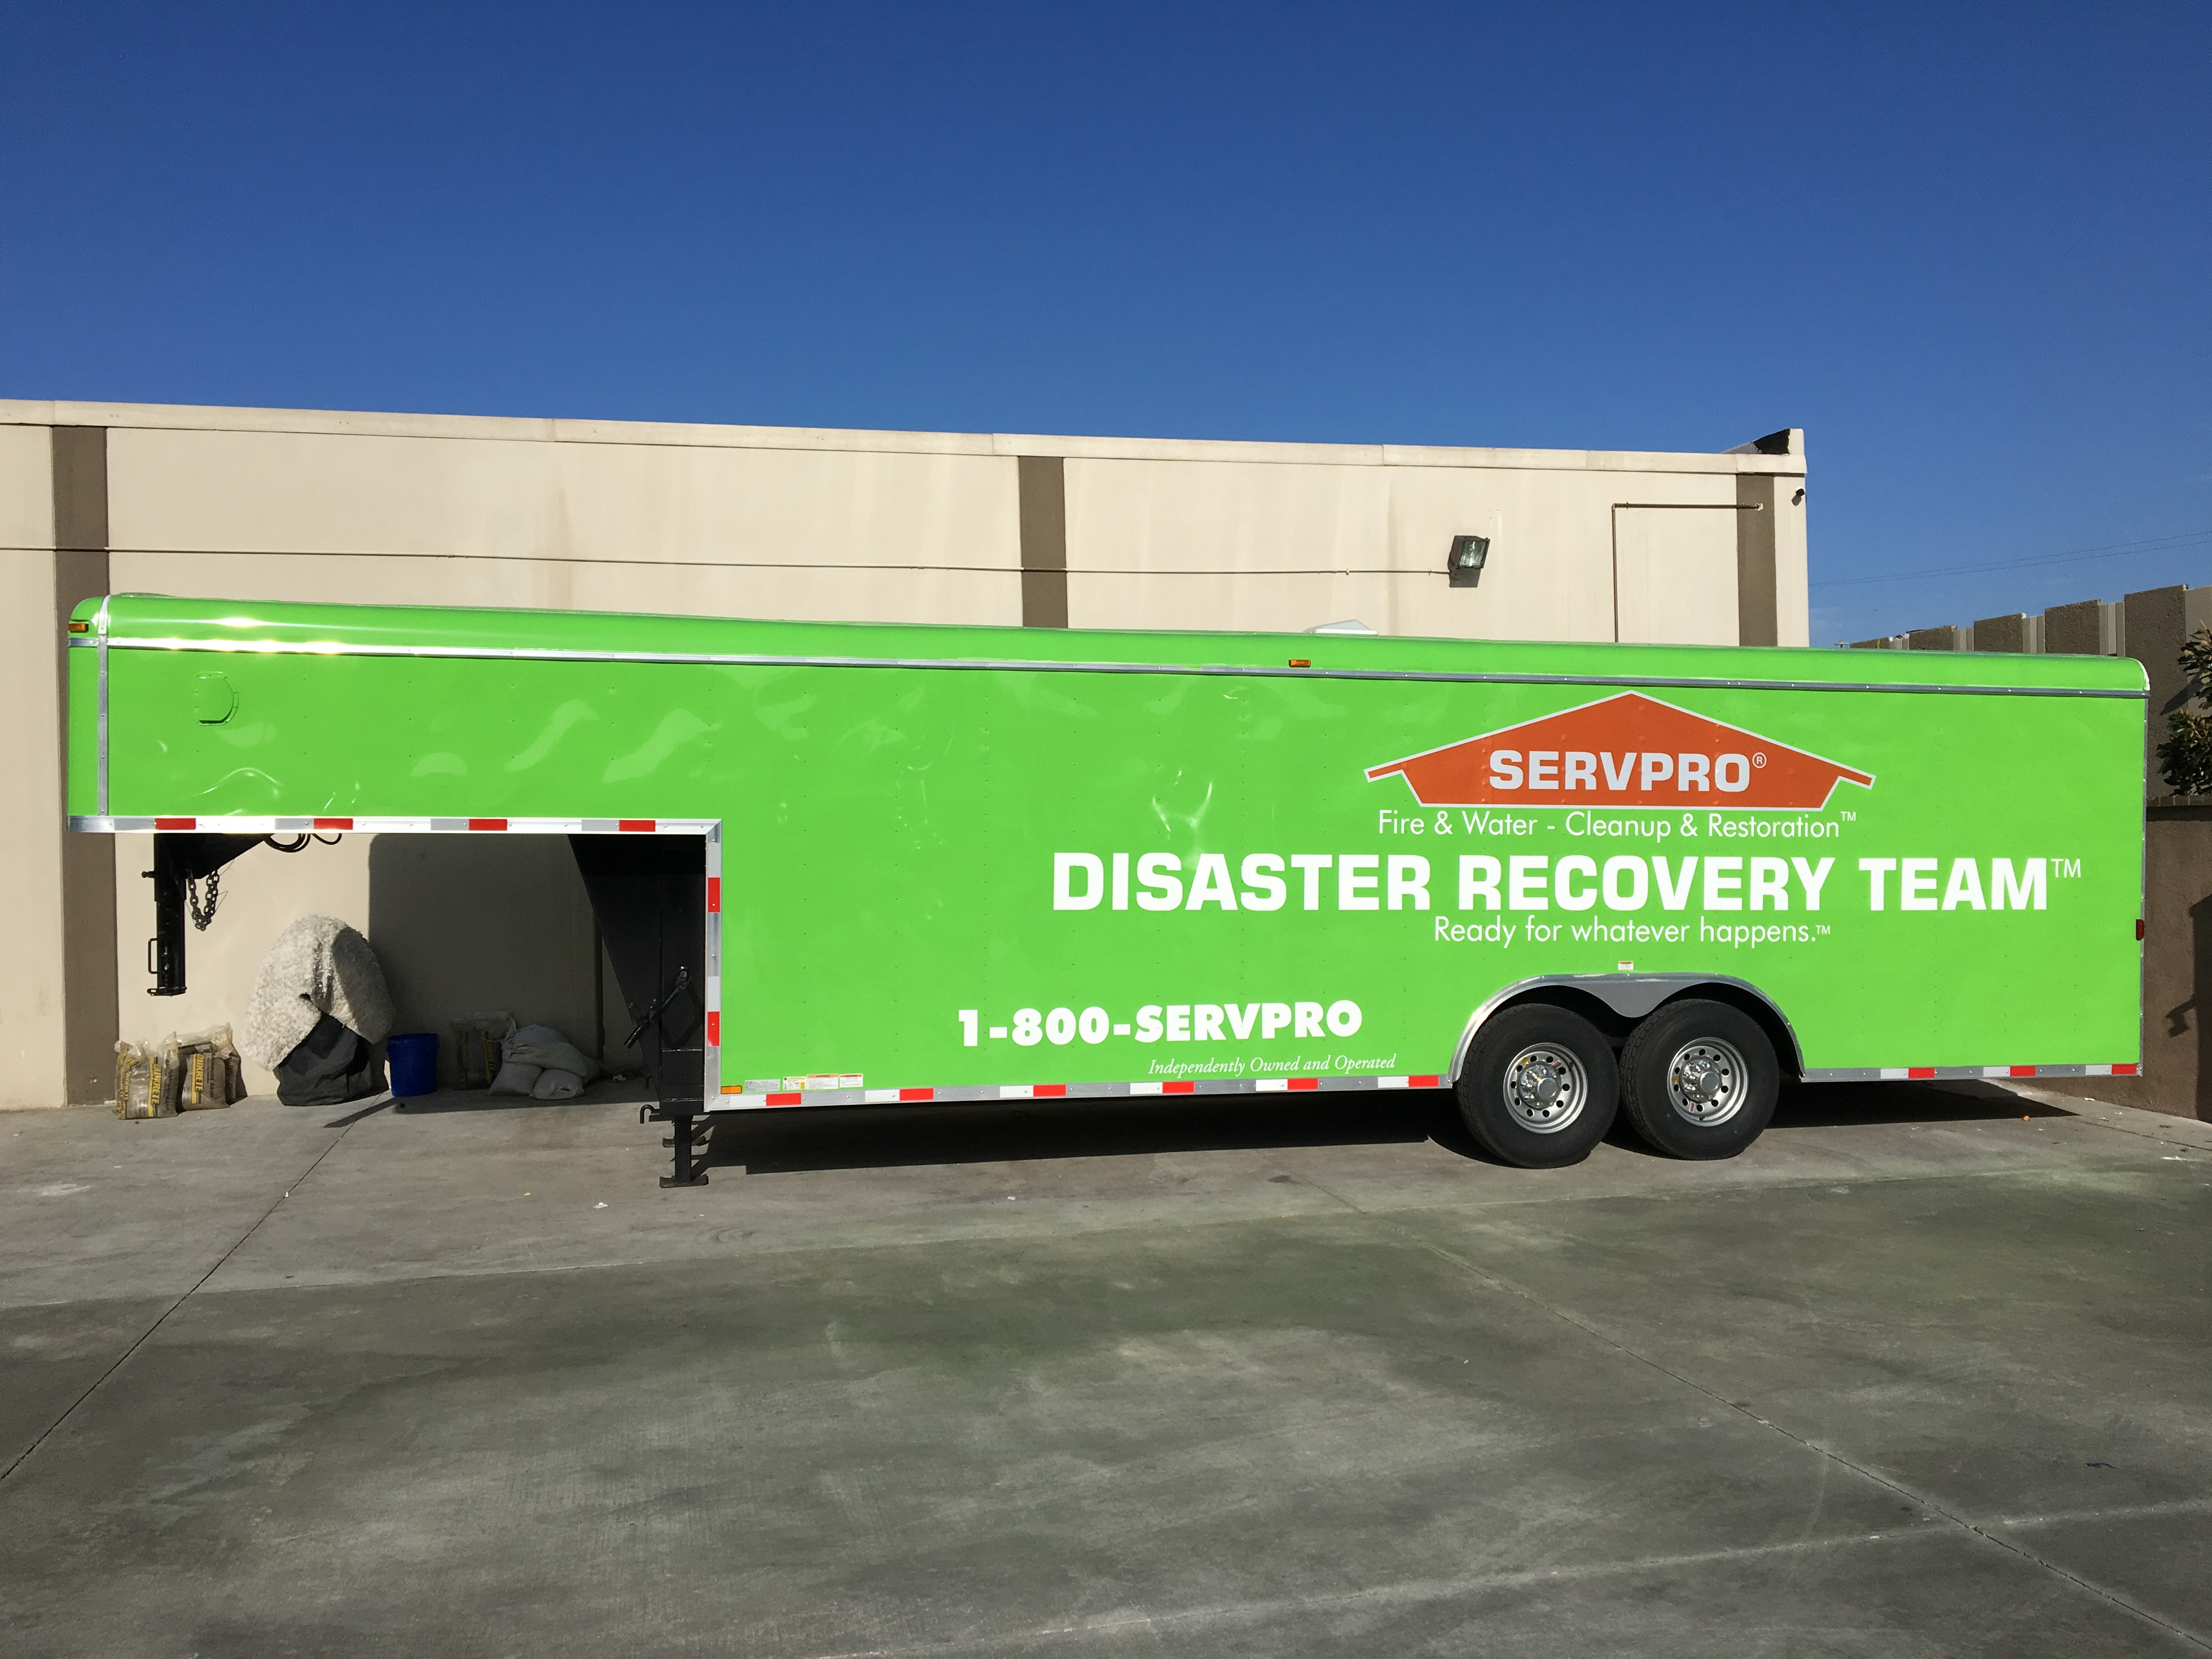 SERVPRO of Costa Mesa Water and Fire Damage Cleanup and Restoration image 18